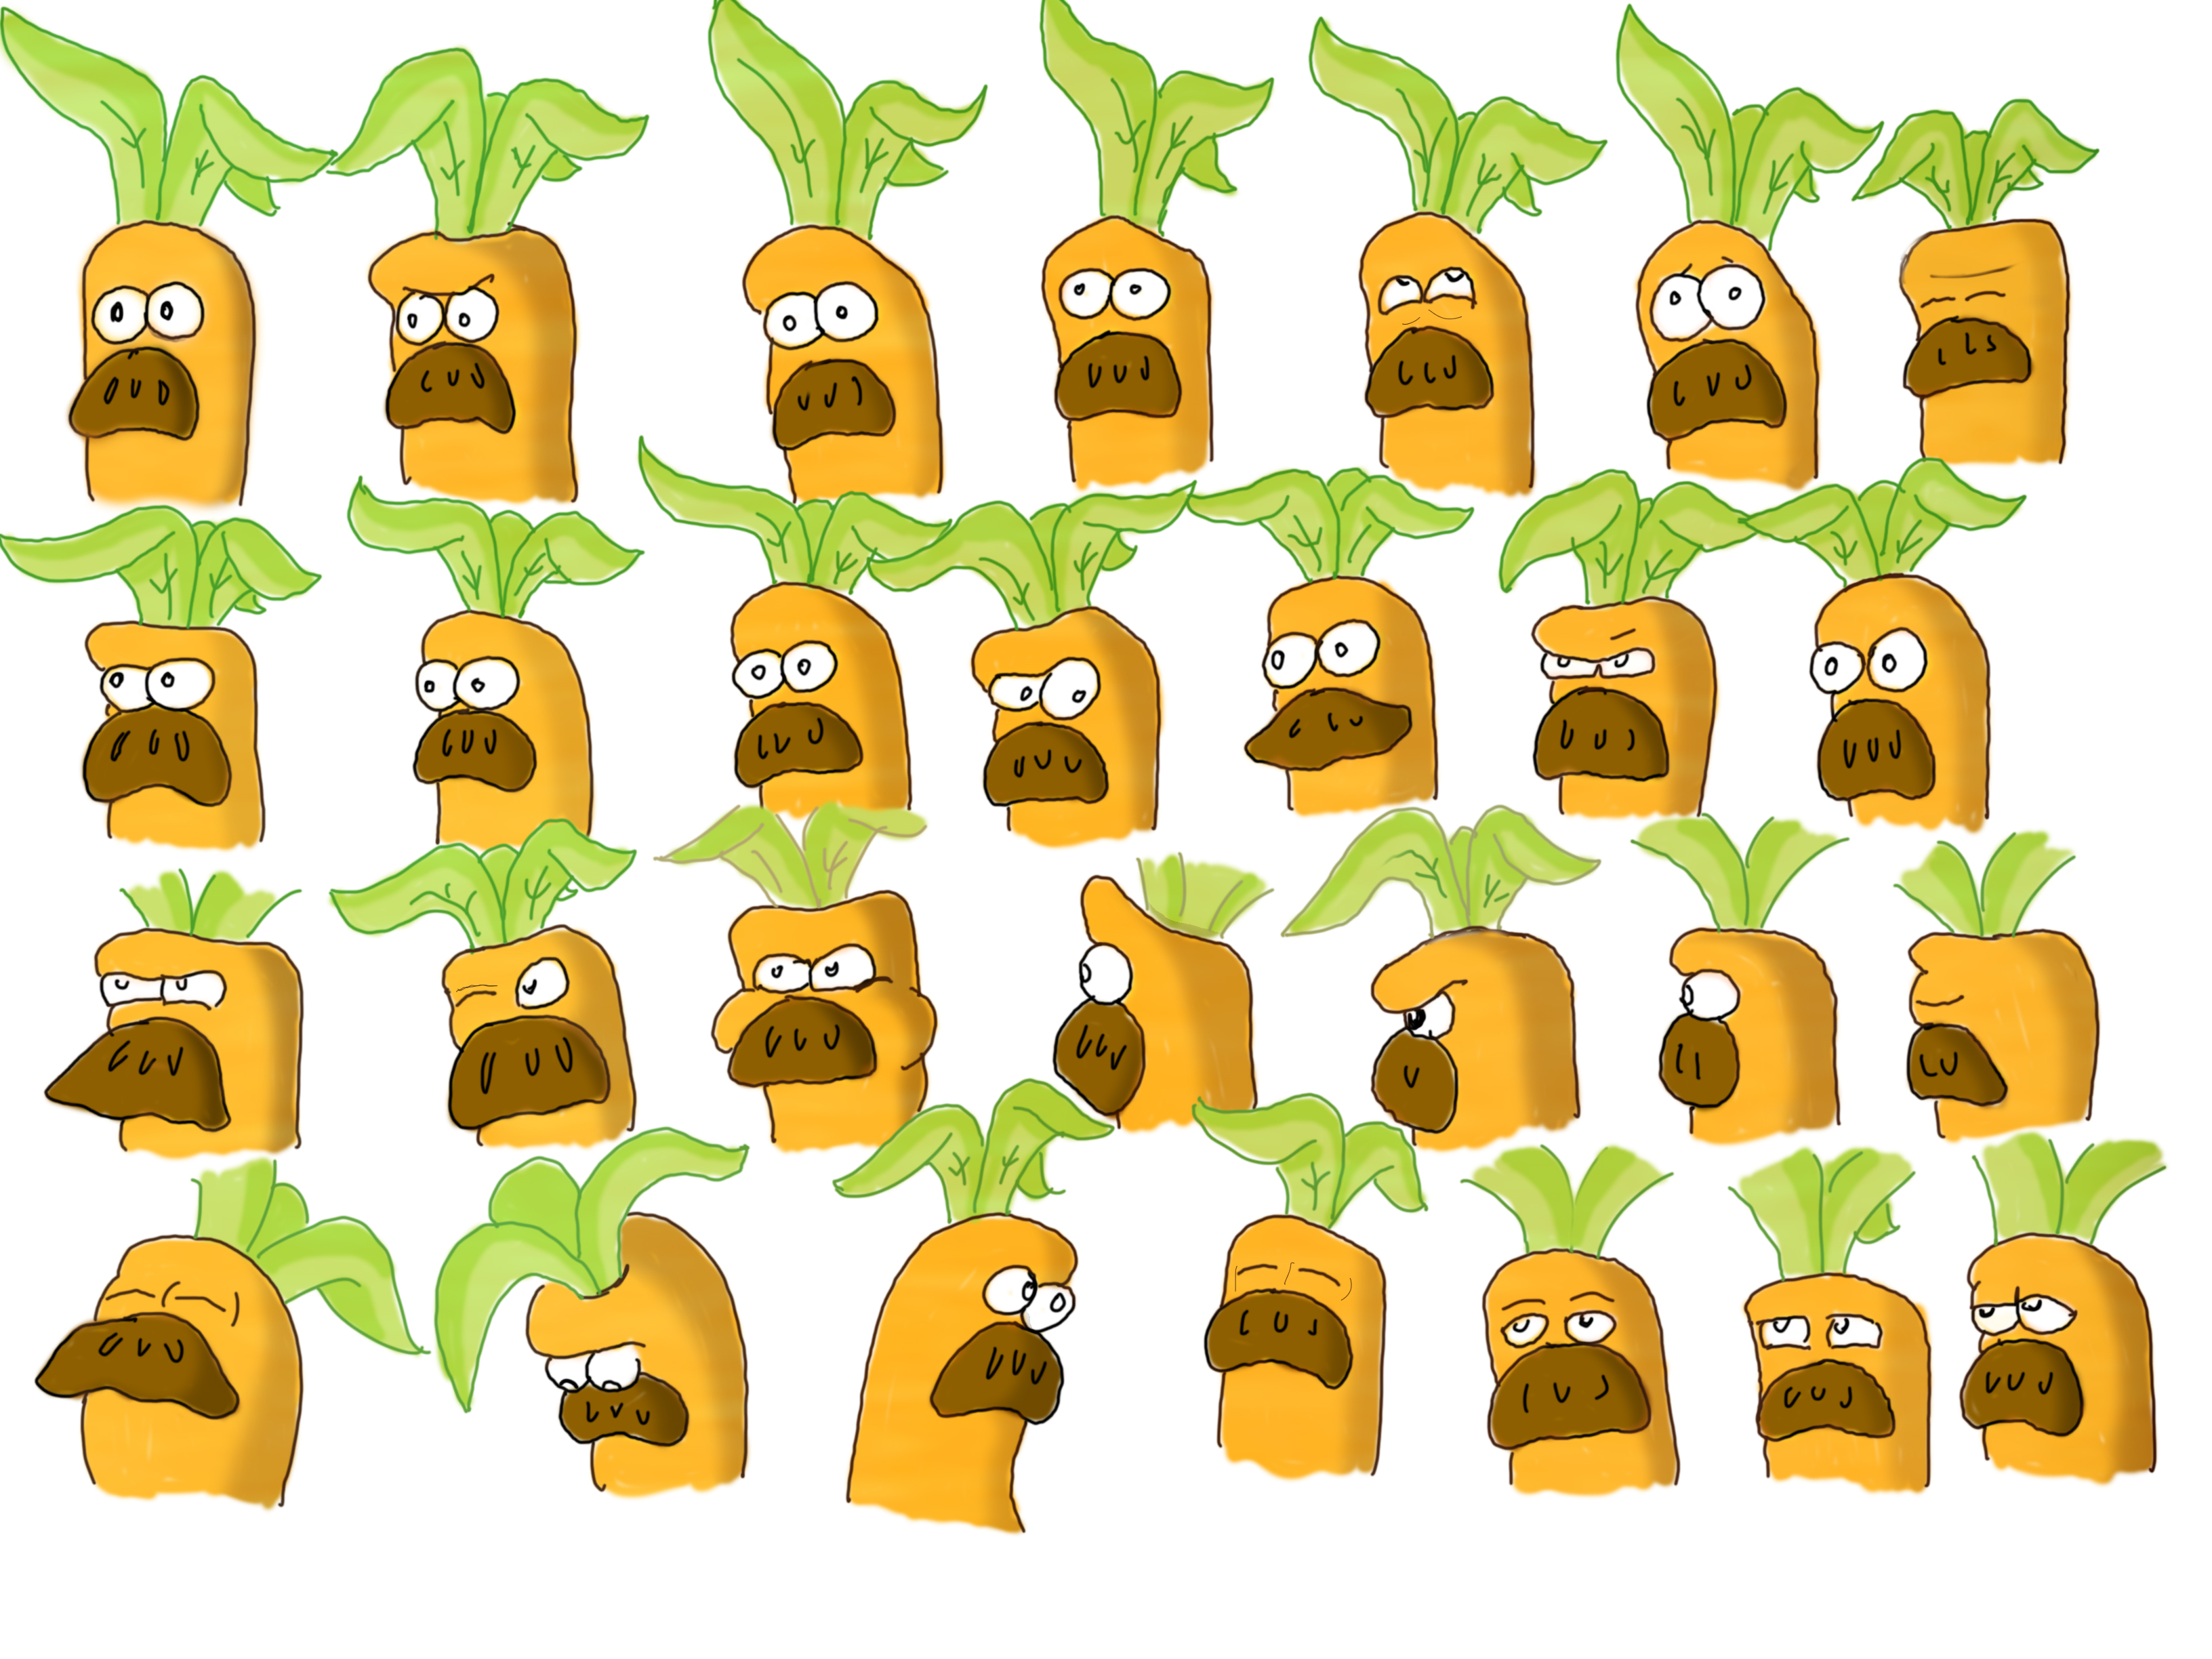 Carrot expressions